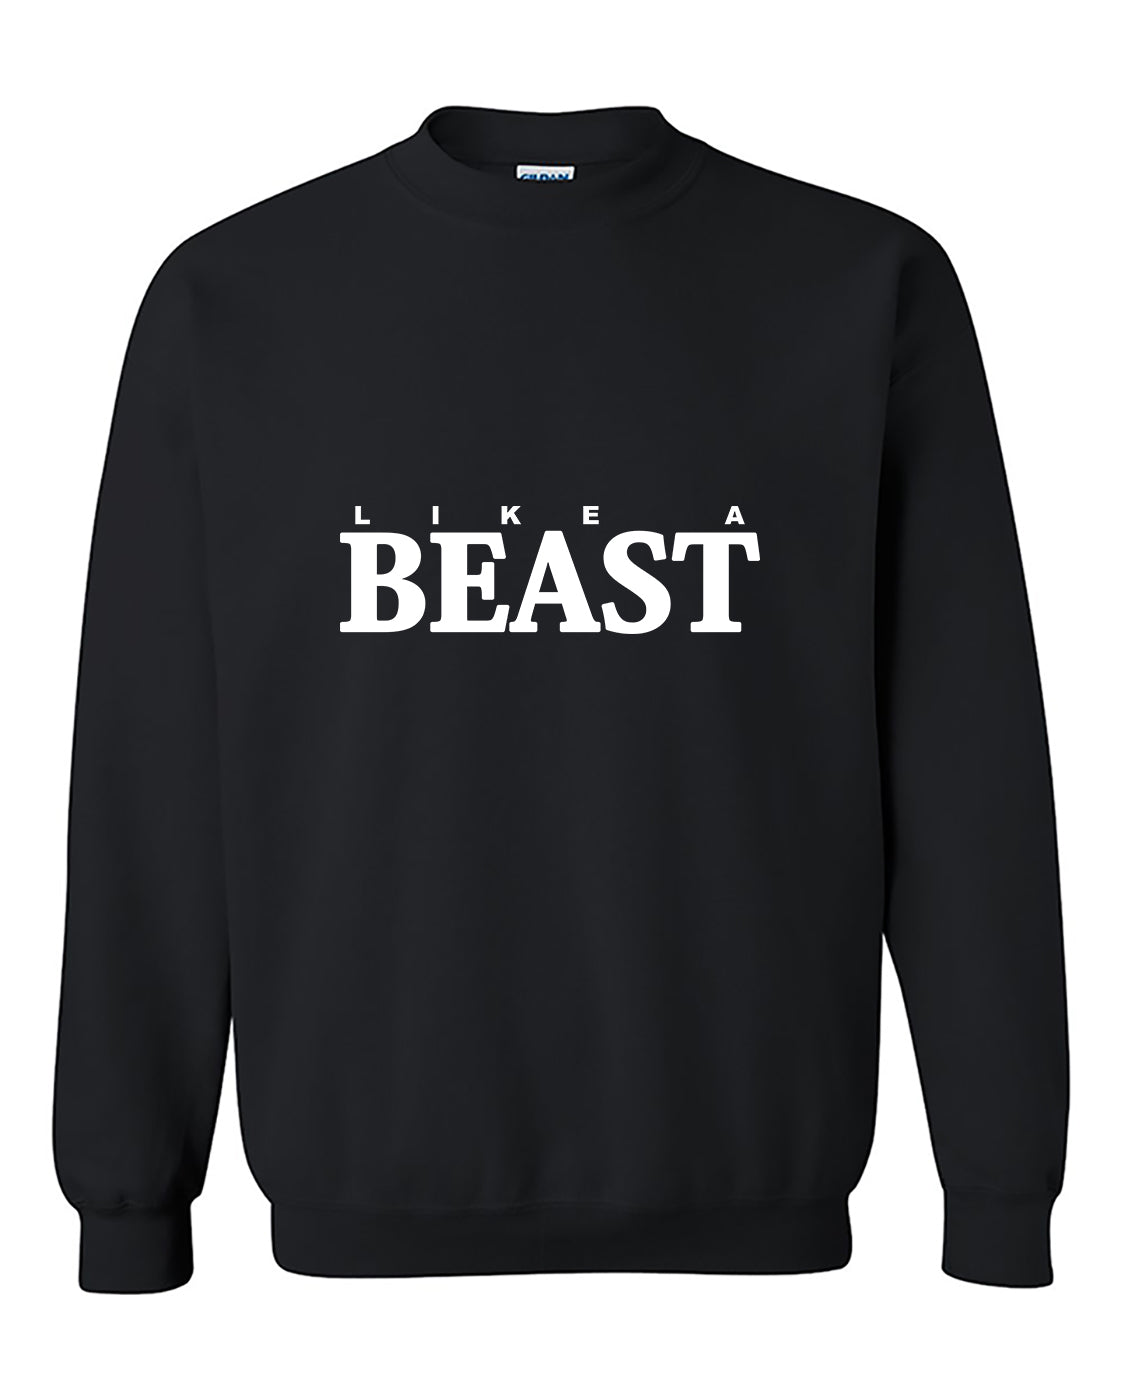 Like A Beast fashion Workout Gym Fitness Motivation Crewneck Sweater